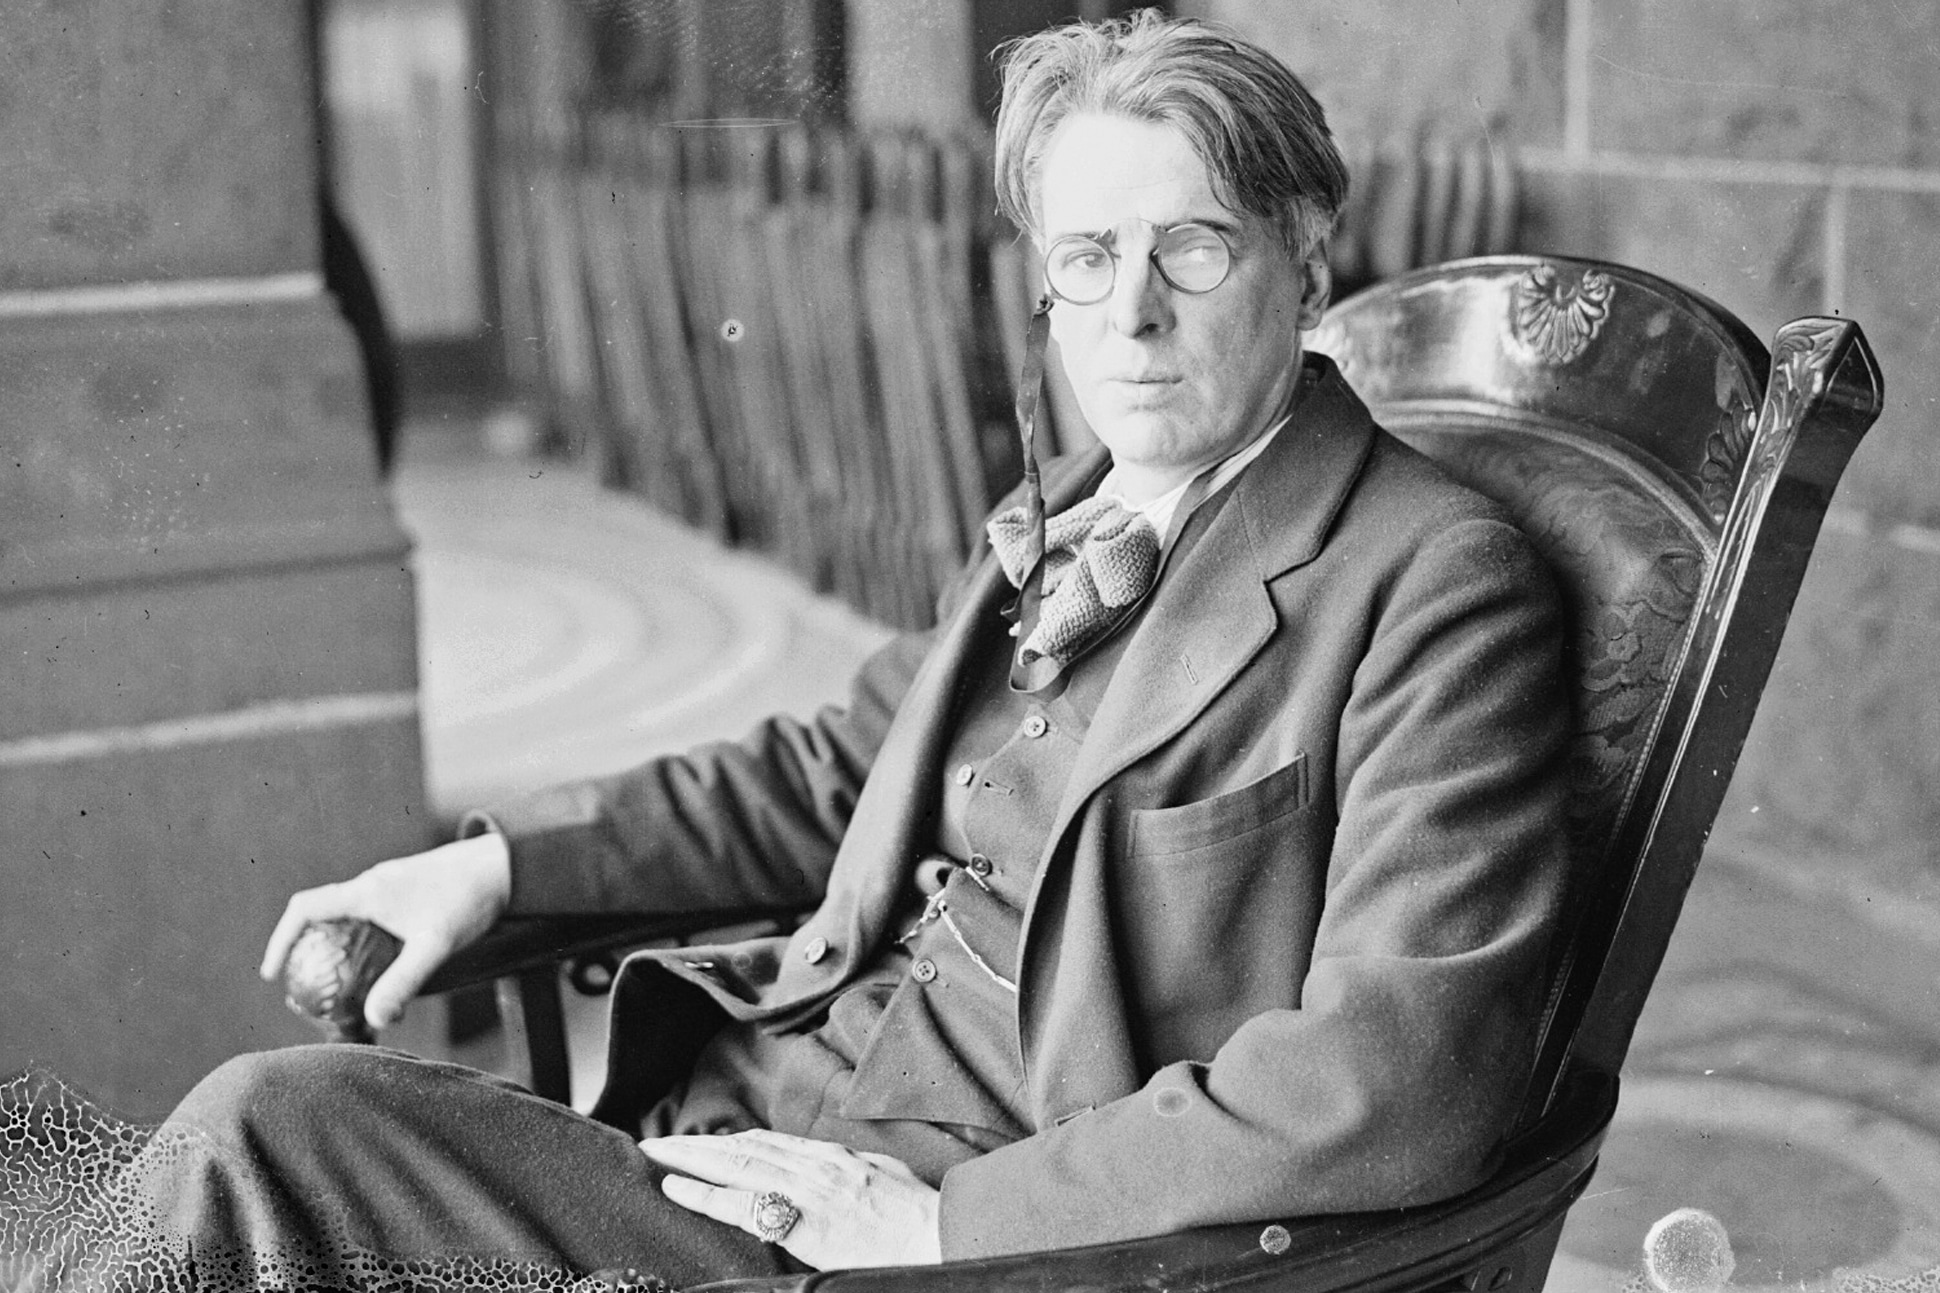 fd65e567a3be4de801f916067cb9fe85 5 - 10 Things You Might Not Know About W.B. Yeats